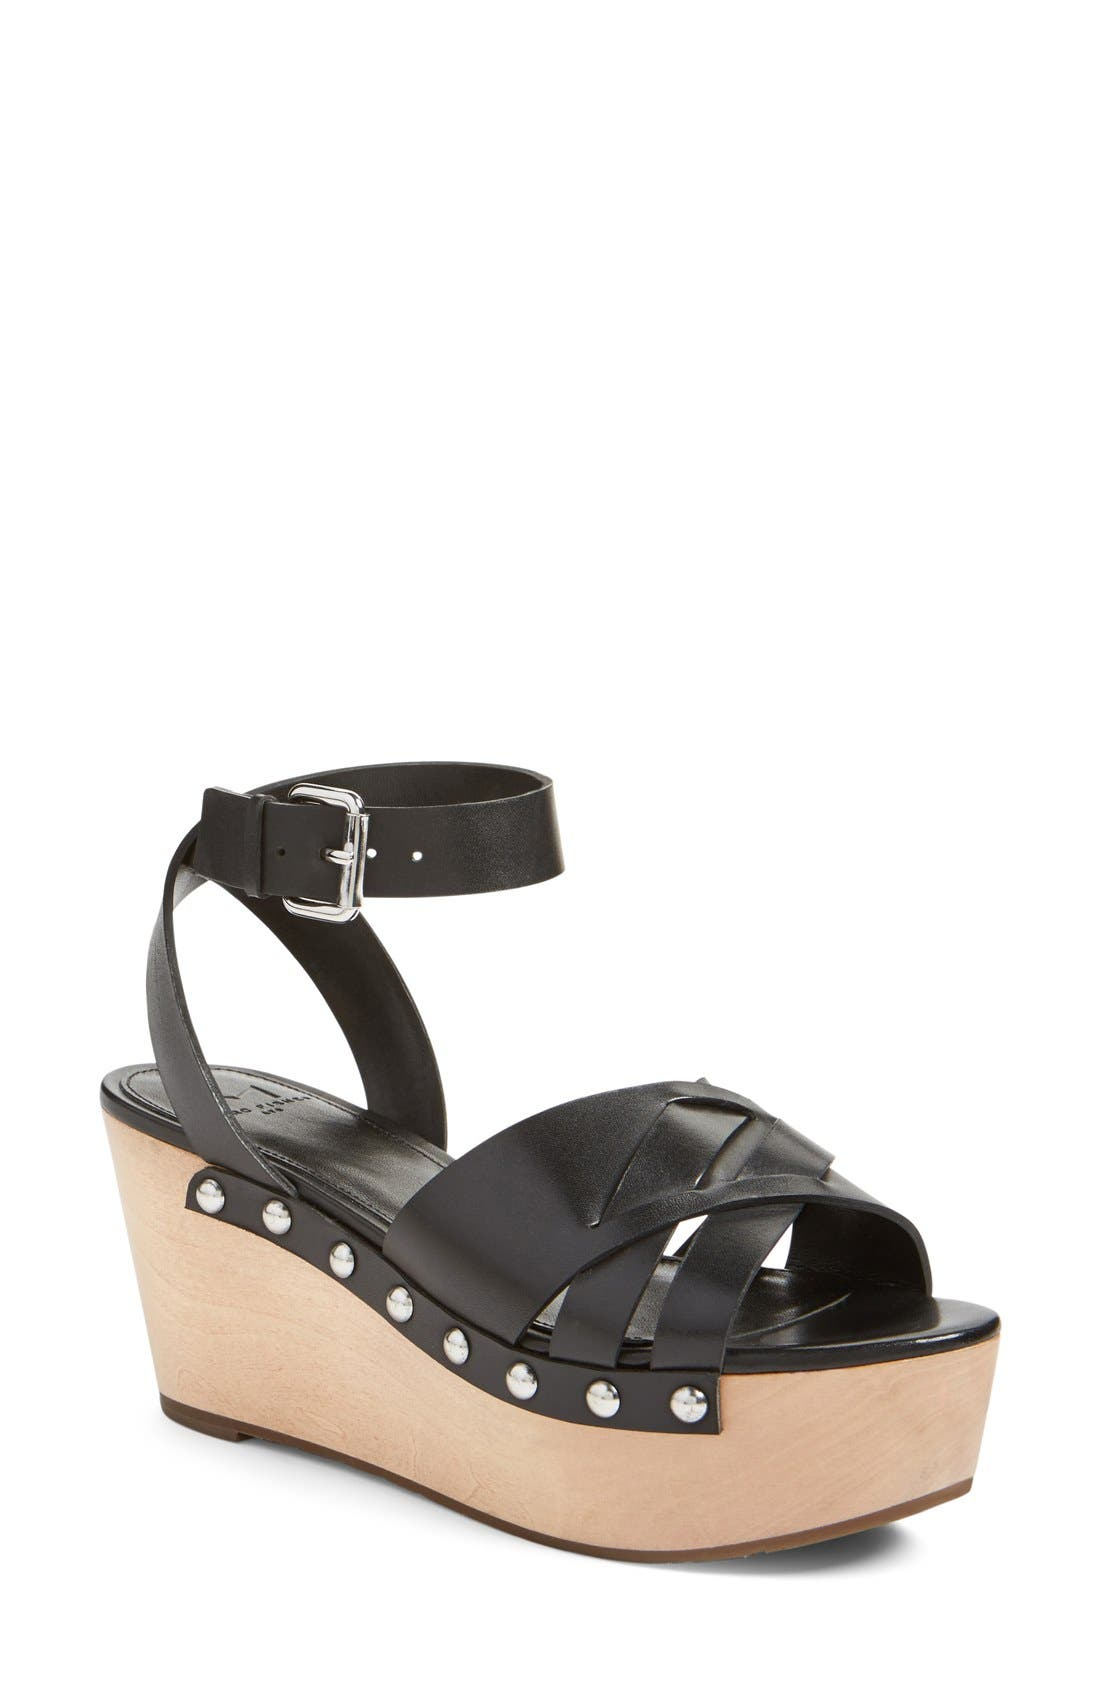 MARC FISHER LTD 'Camilla' Wedge Sandal, Main, color, 001